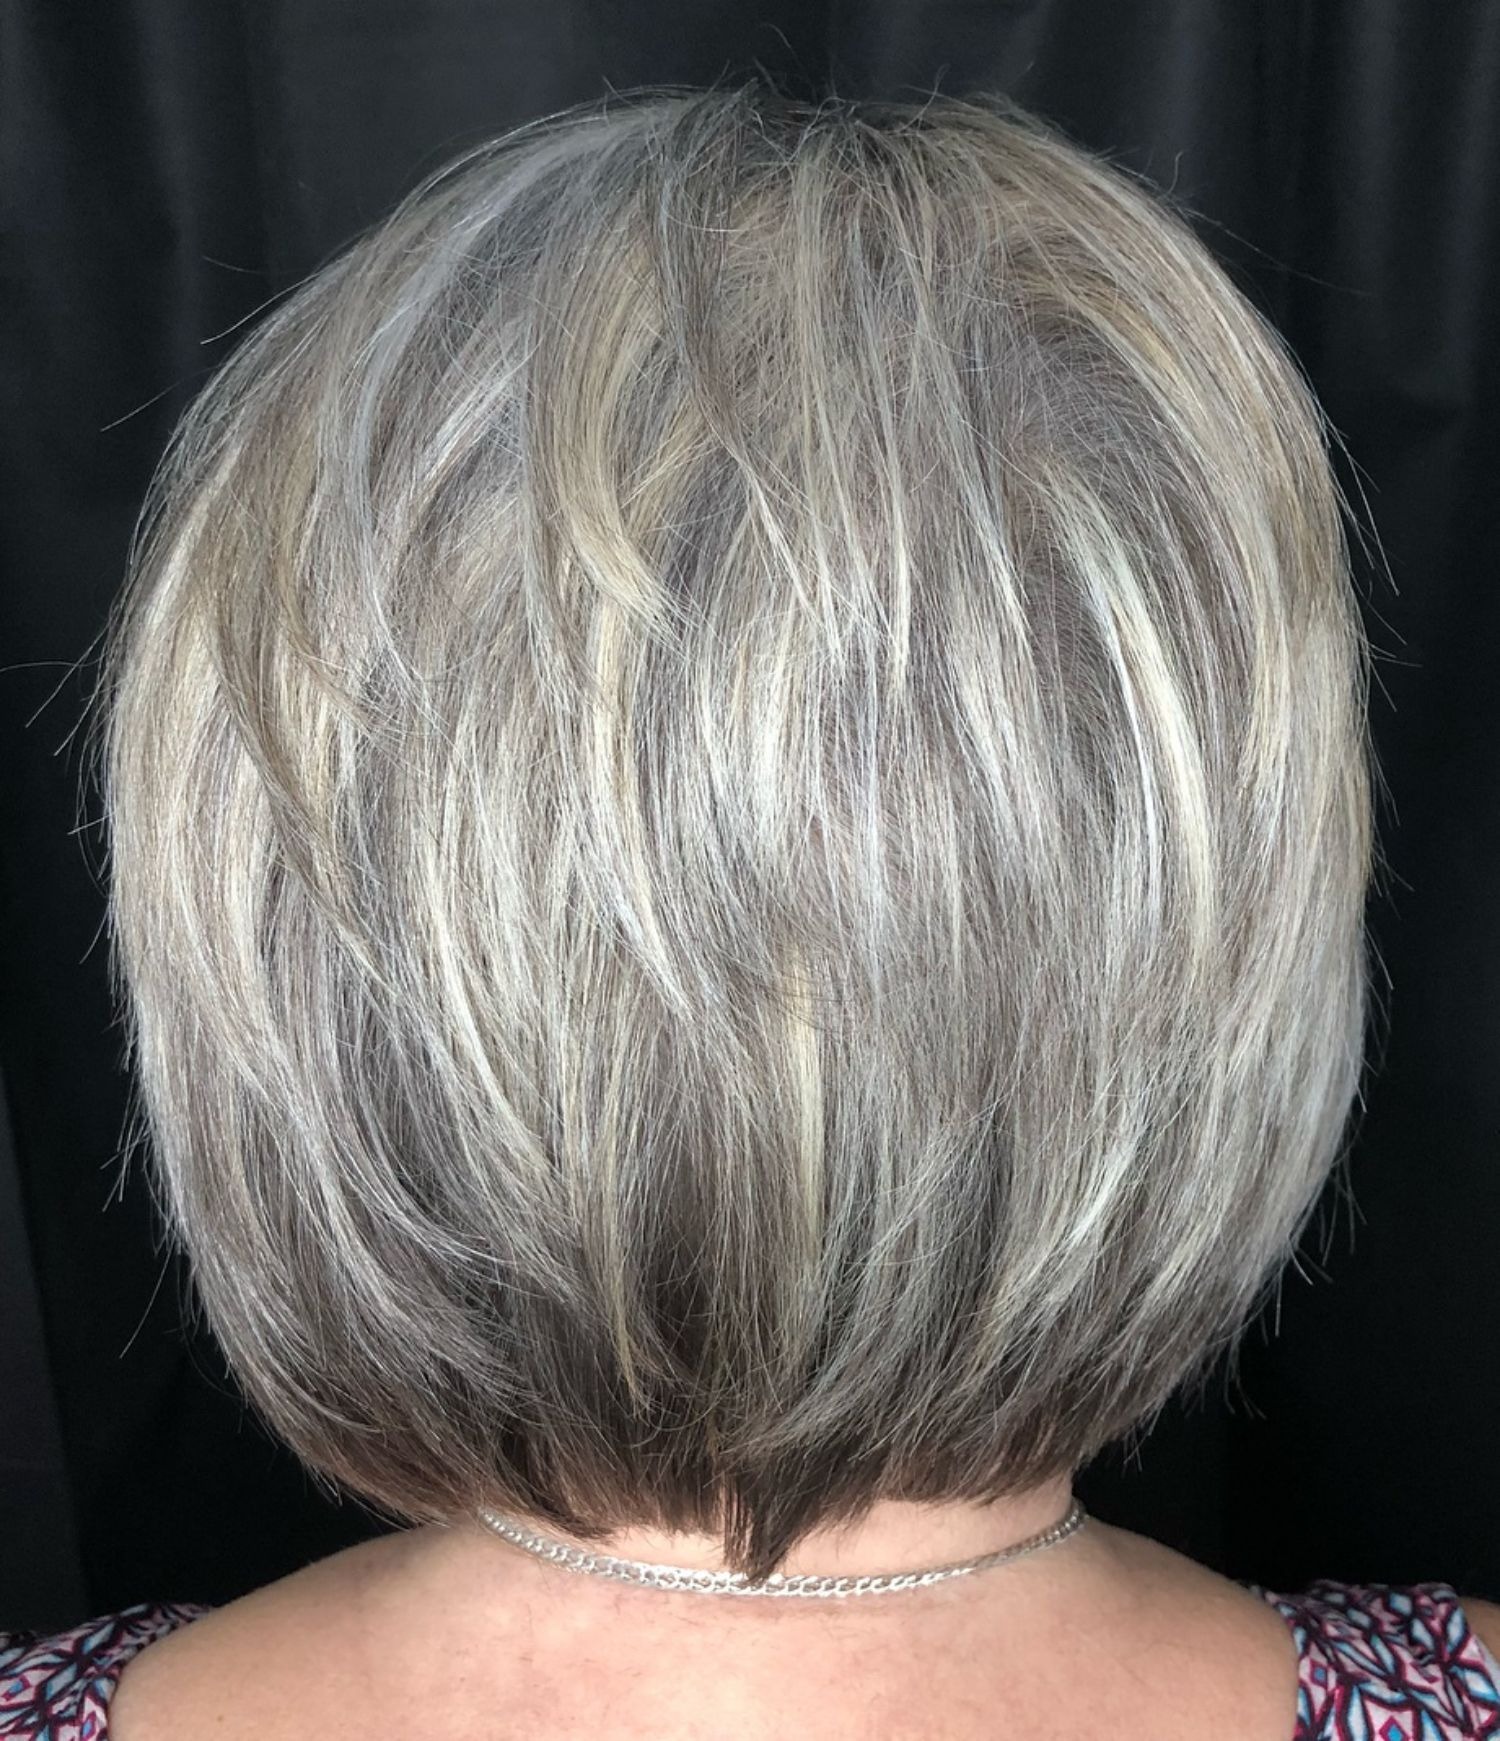 Feathered Style With White Highlights Grey Hair Styles For Women Gray Hair Highlights Silver White Hair